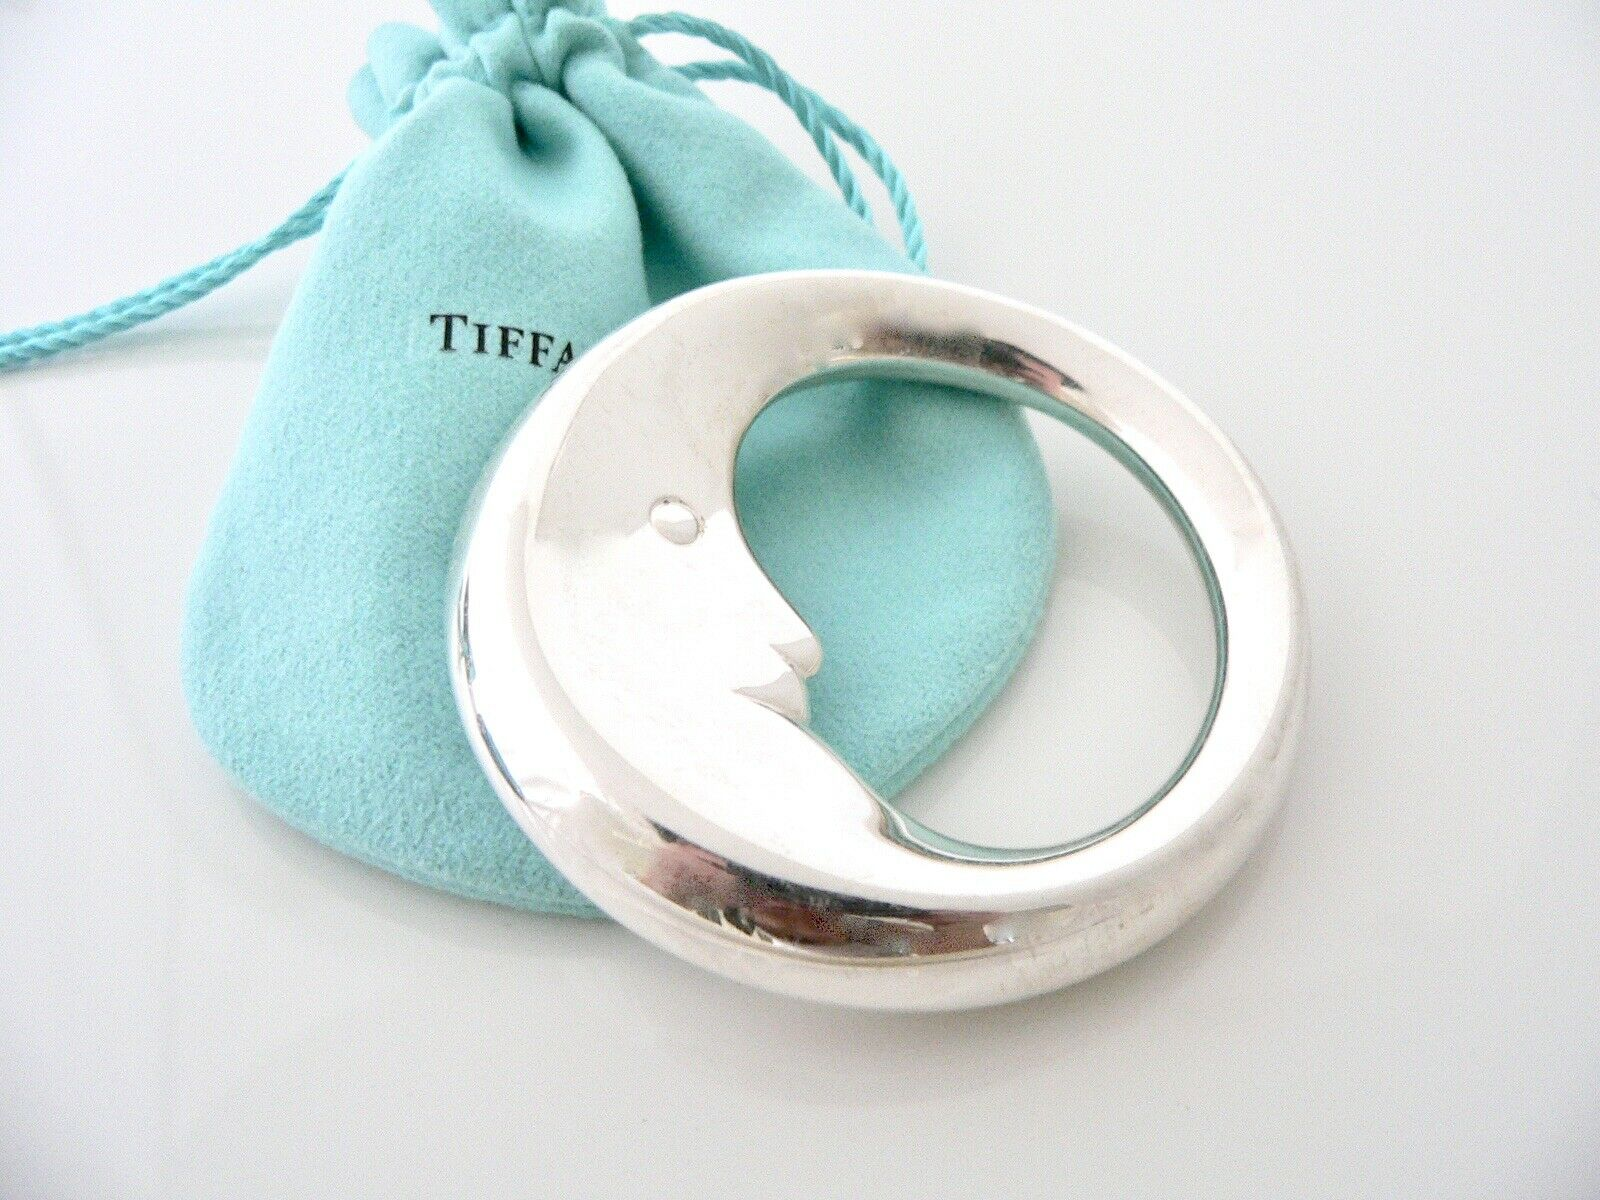 Tiffany & Co Rare Sterling Silver Man on the Moon Baby Rattle Teether Gift Art